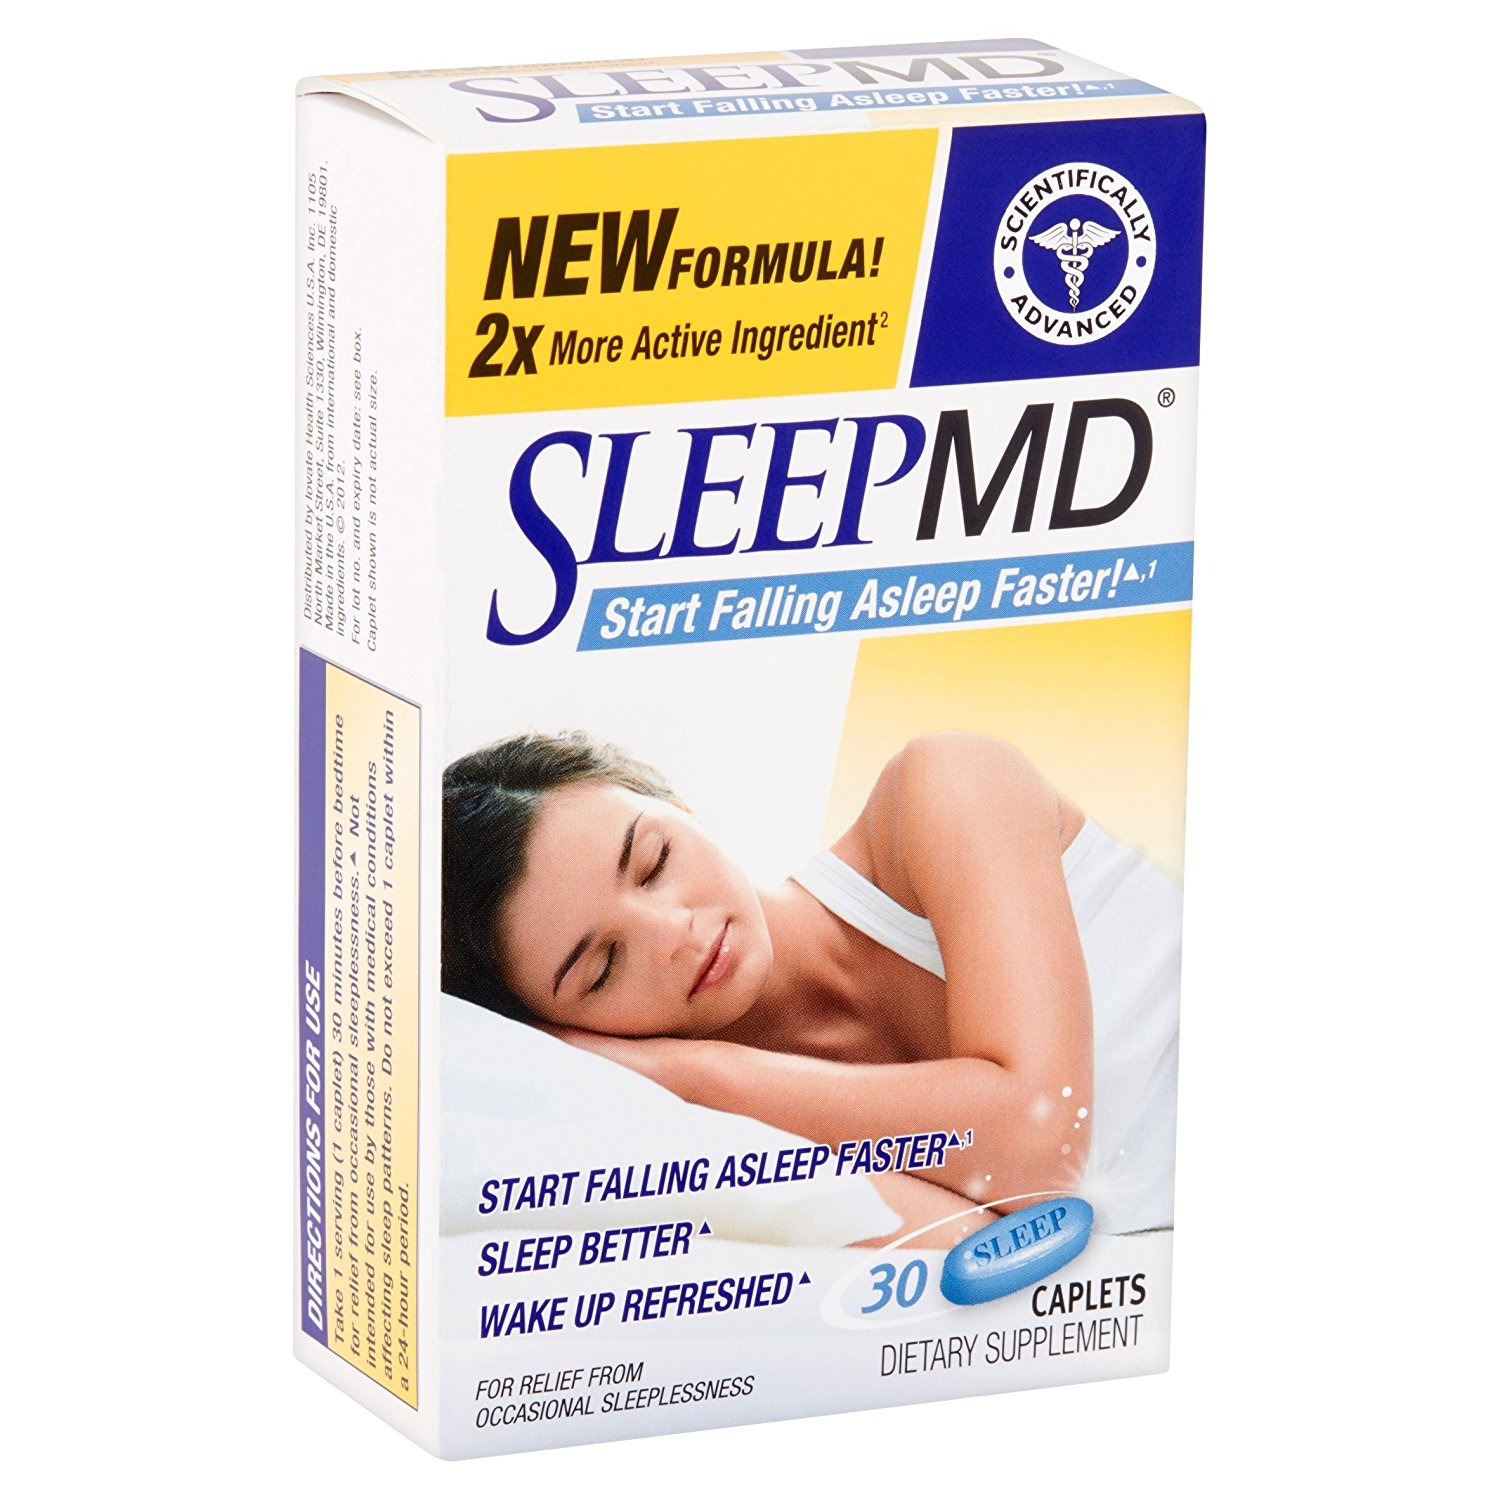 SleepMD, Caplets 30 ea Pack of 3, *PACKAGING MAY VARY* By MD Products